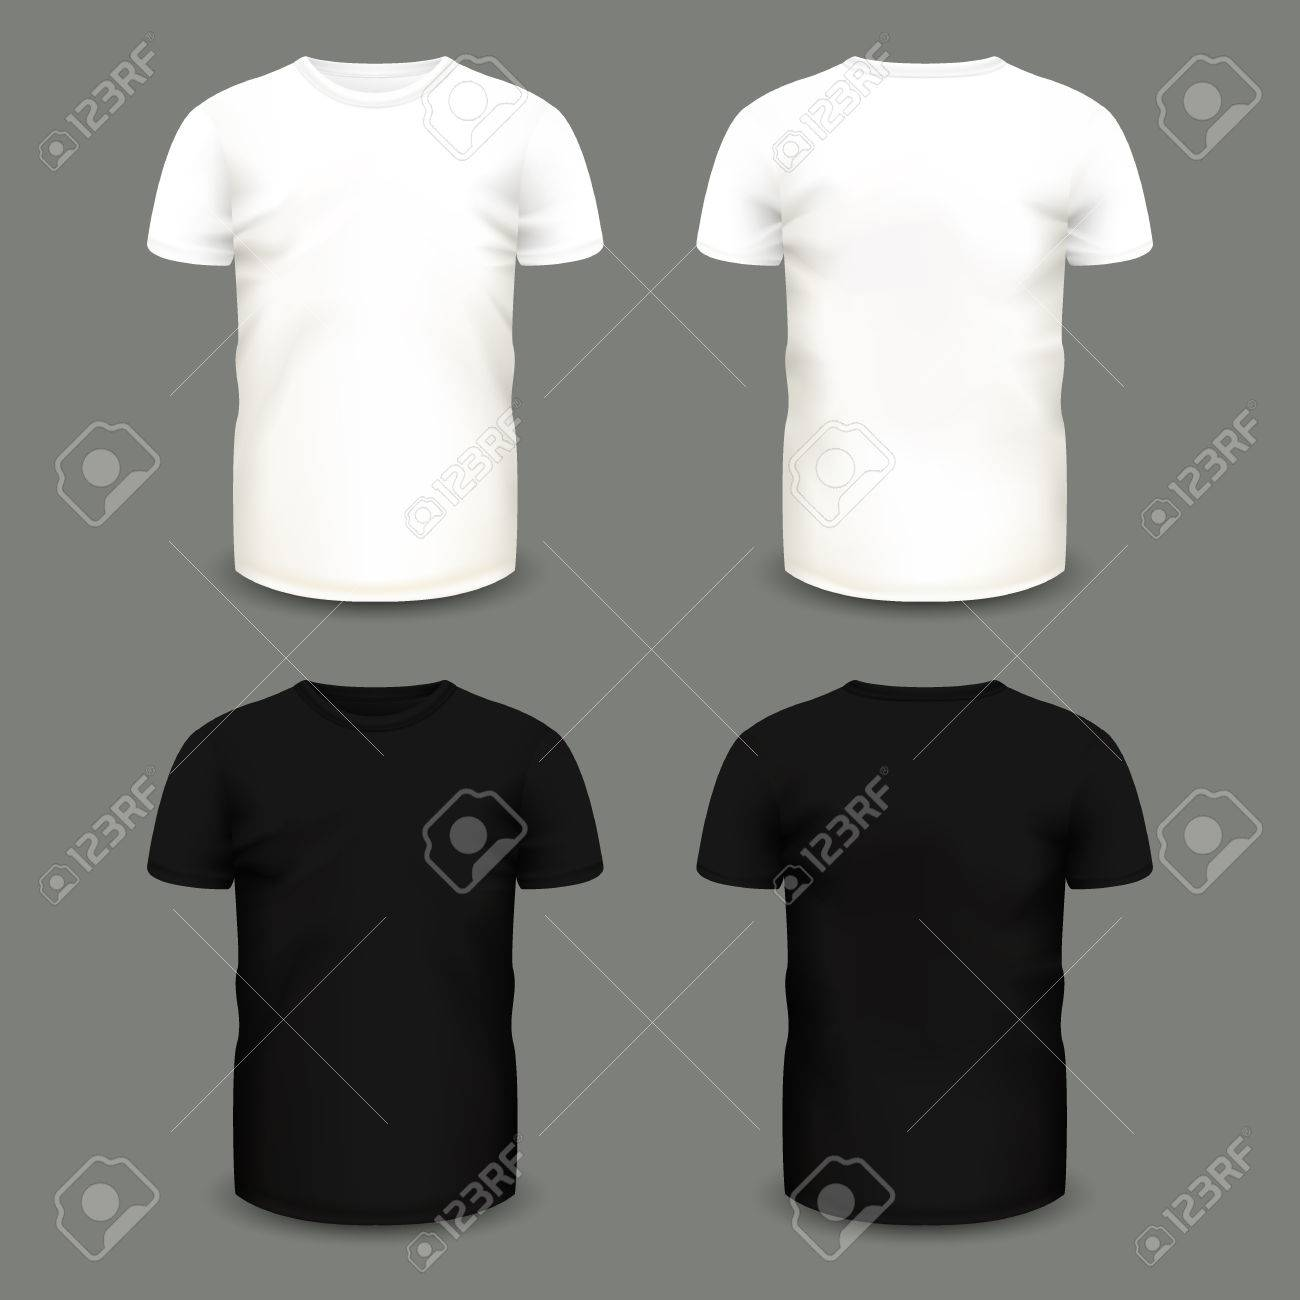 set of mens white and black t shirts in front and back views